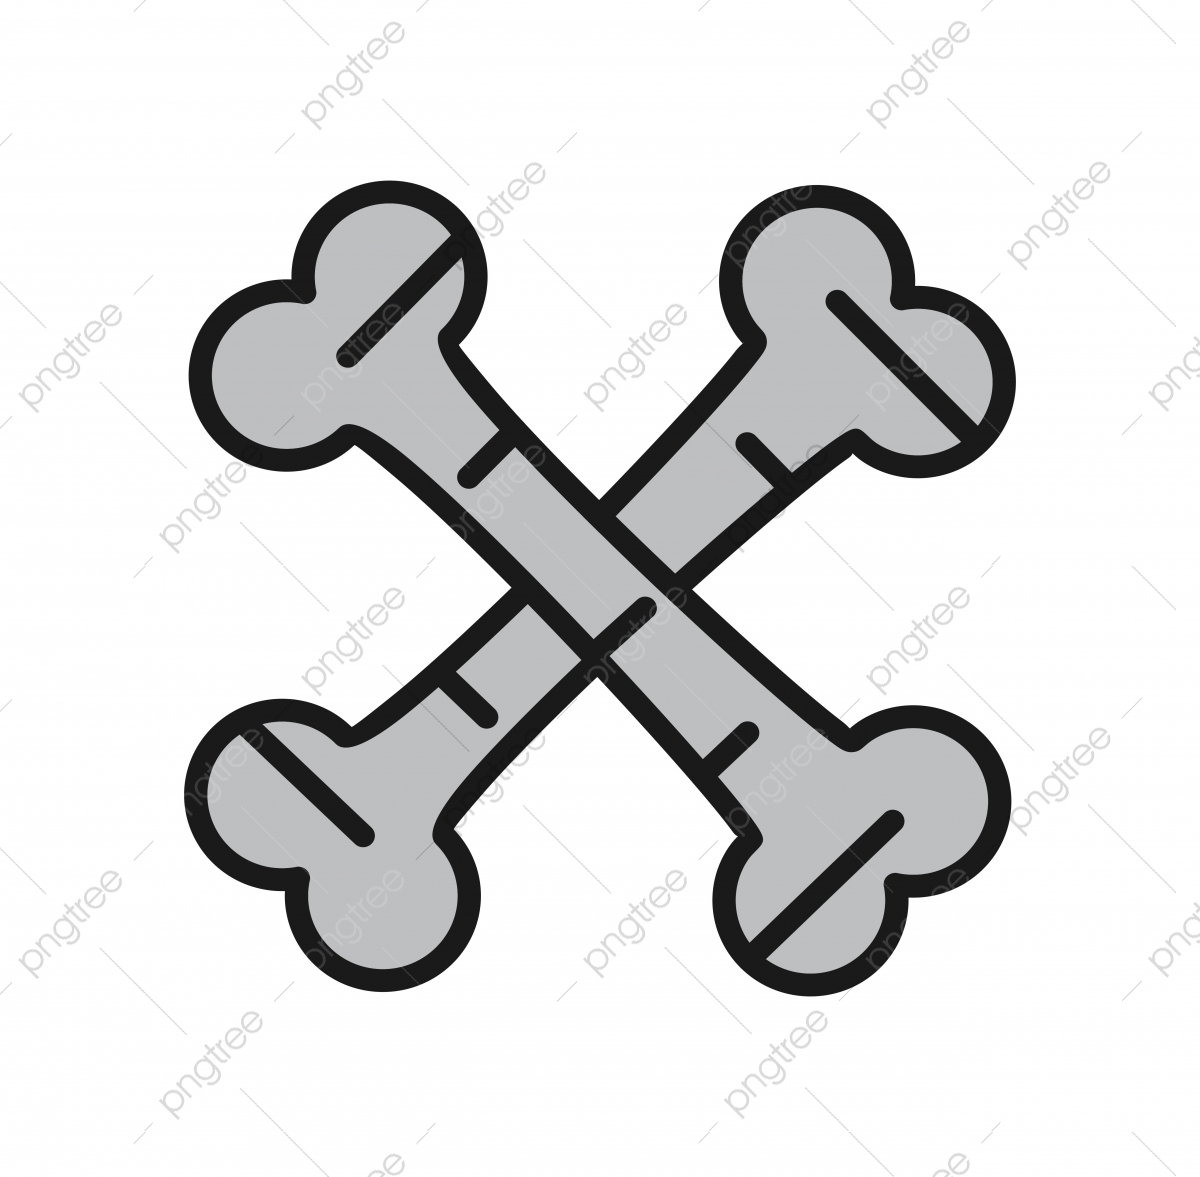 Bones Icon For Your Project Project Icons Bones Cross Bones Png And Vector With Transparent Background For Free Download